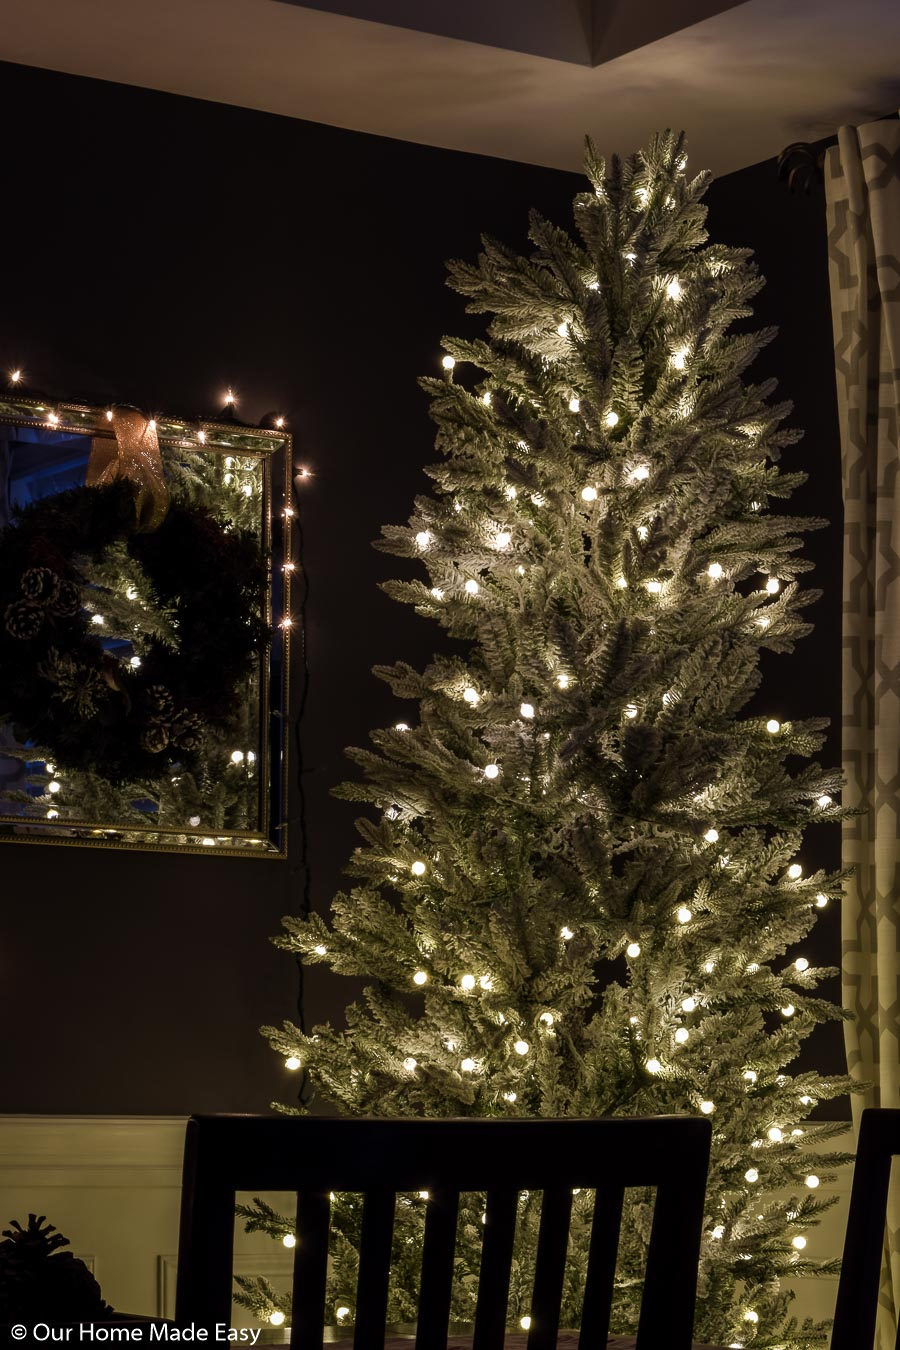 I love the simplicity of this all-white frosted branch Christmas tree with simple white lights